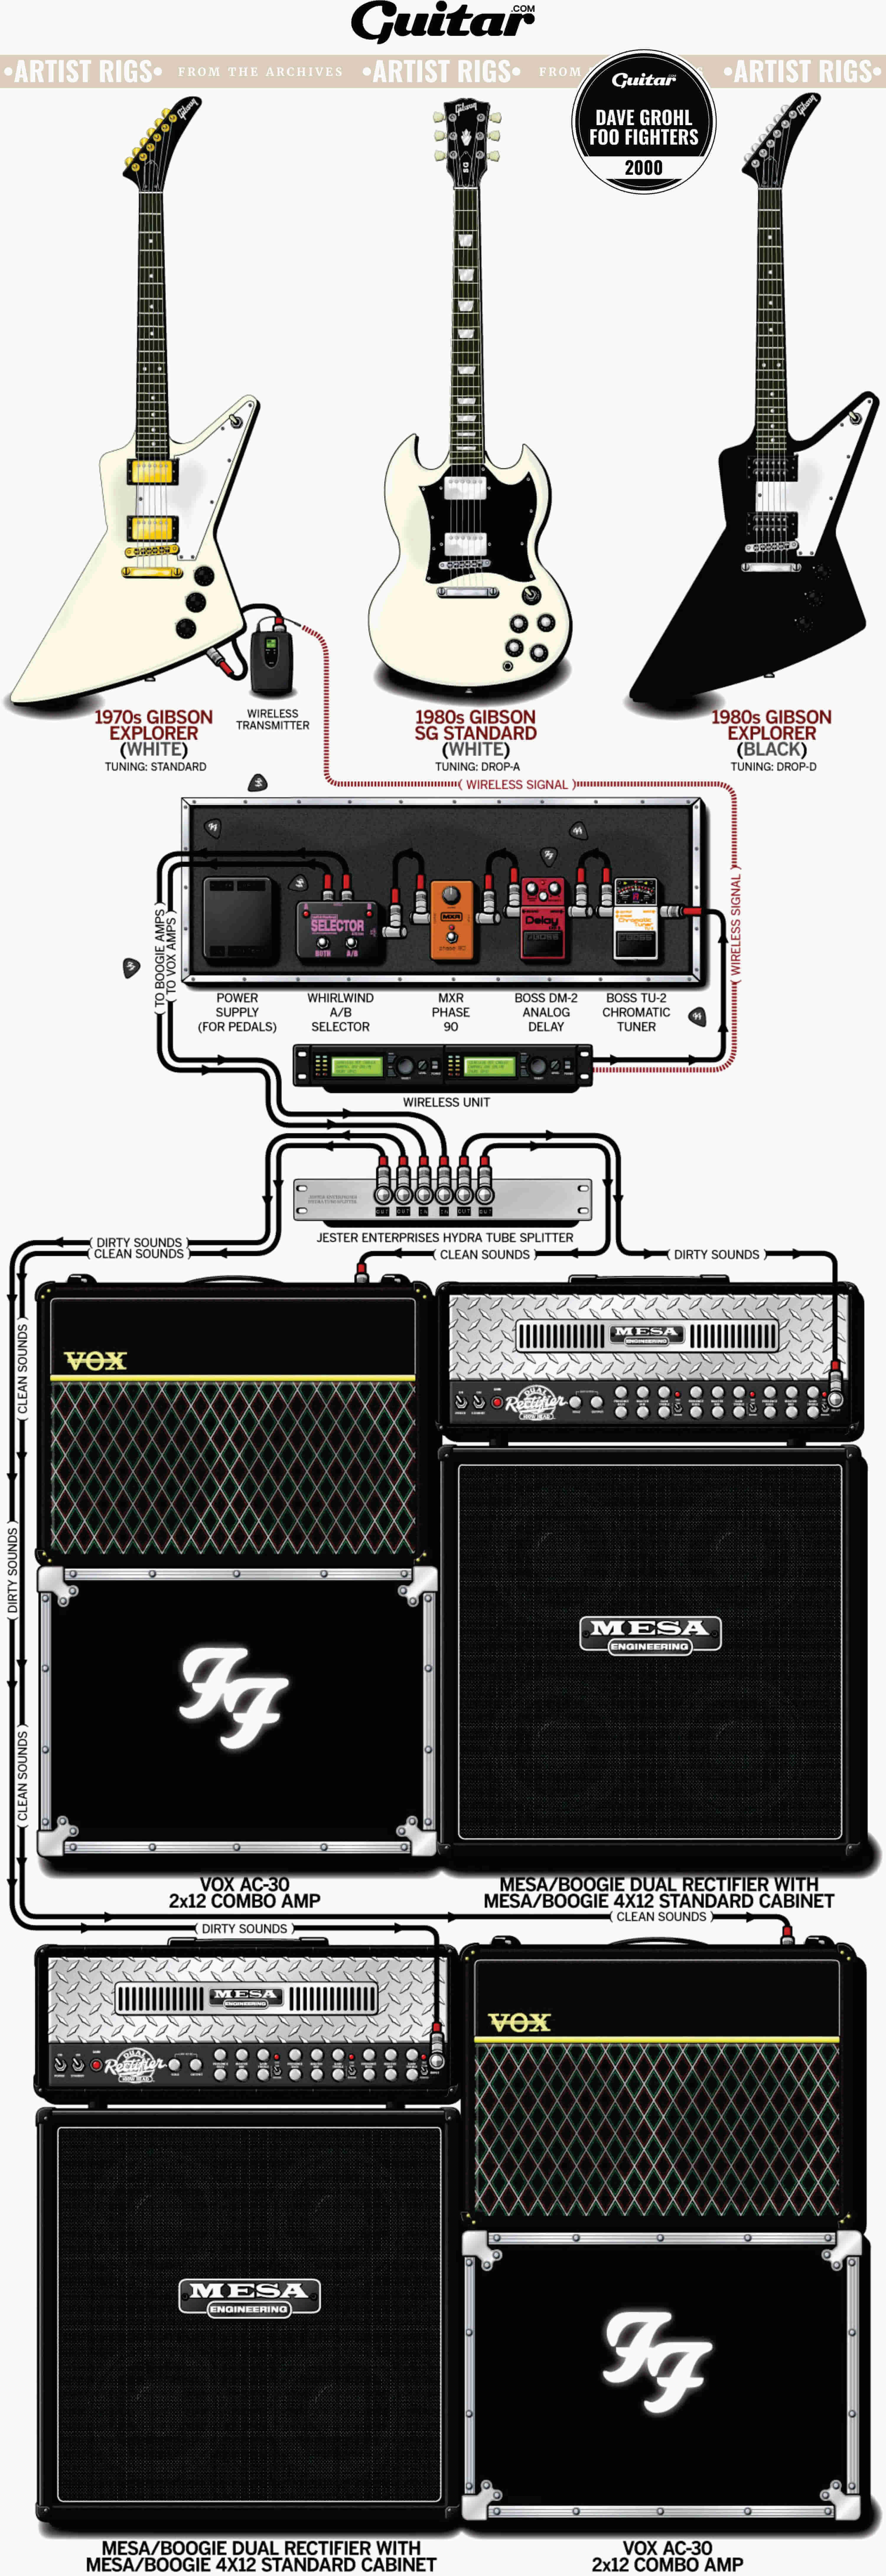 Rig Diagram: Dave Grohl, Foo Fighters (2000)